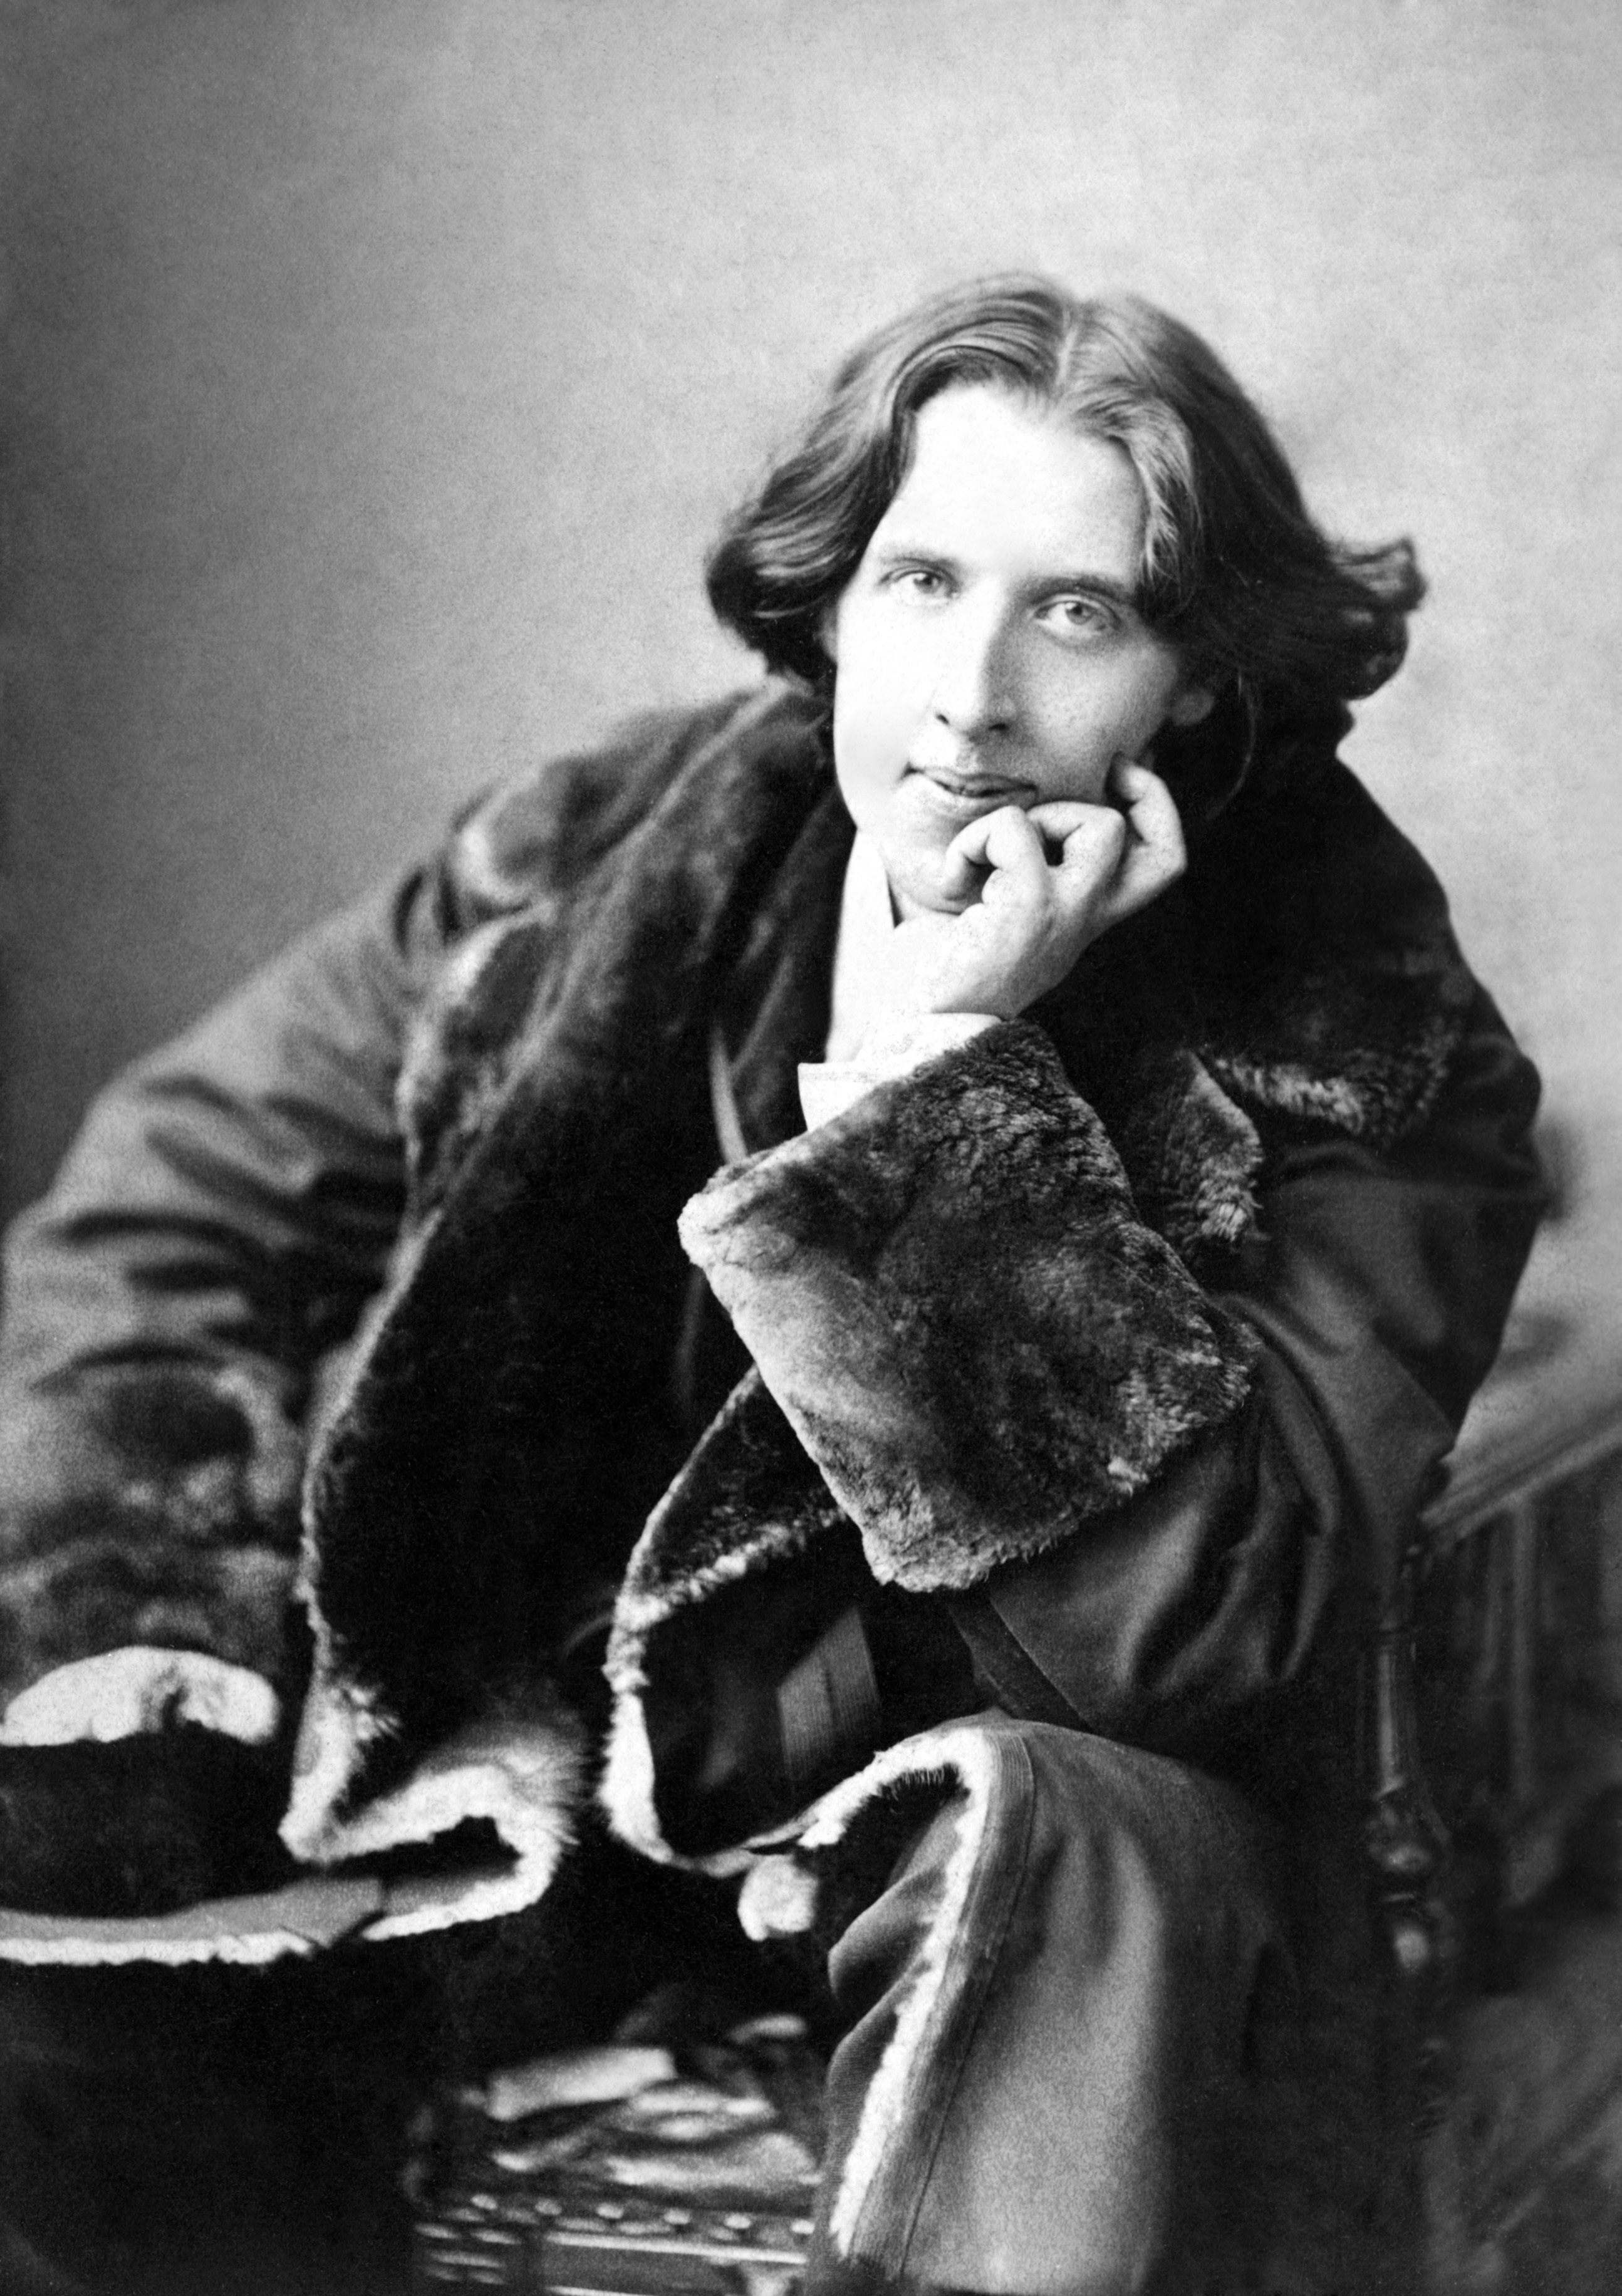 Historic english homes of lgbt heroes oscar wilde and benjamin britten